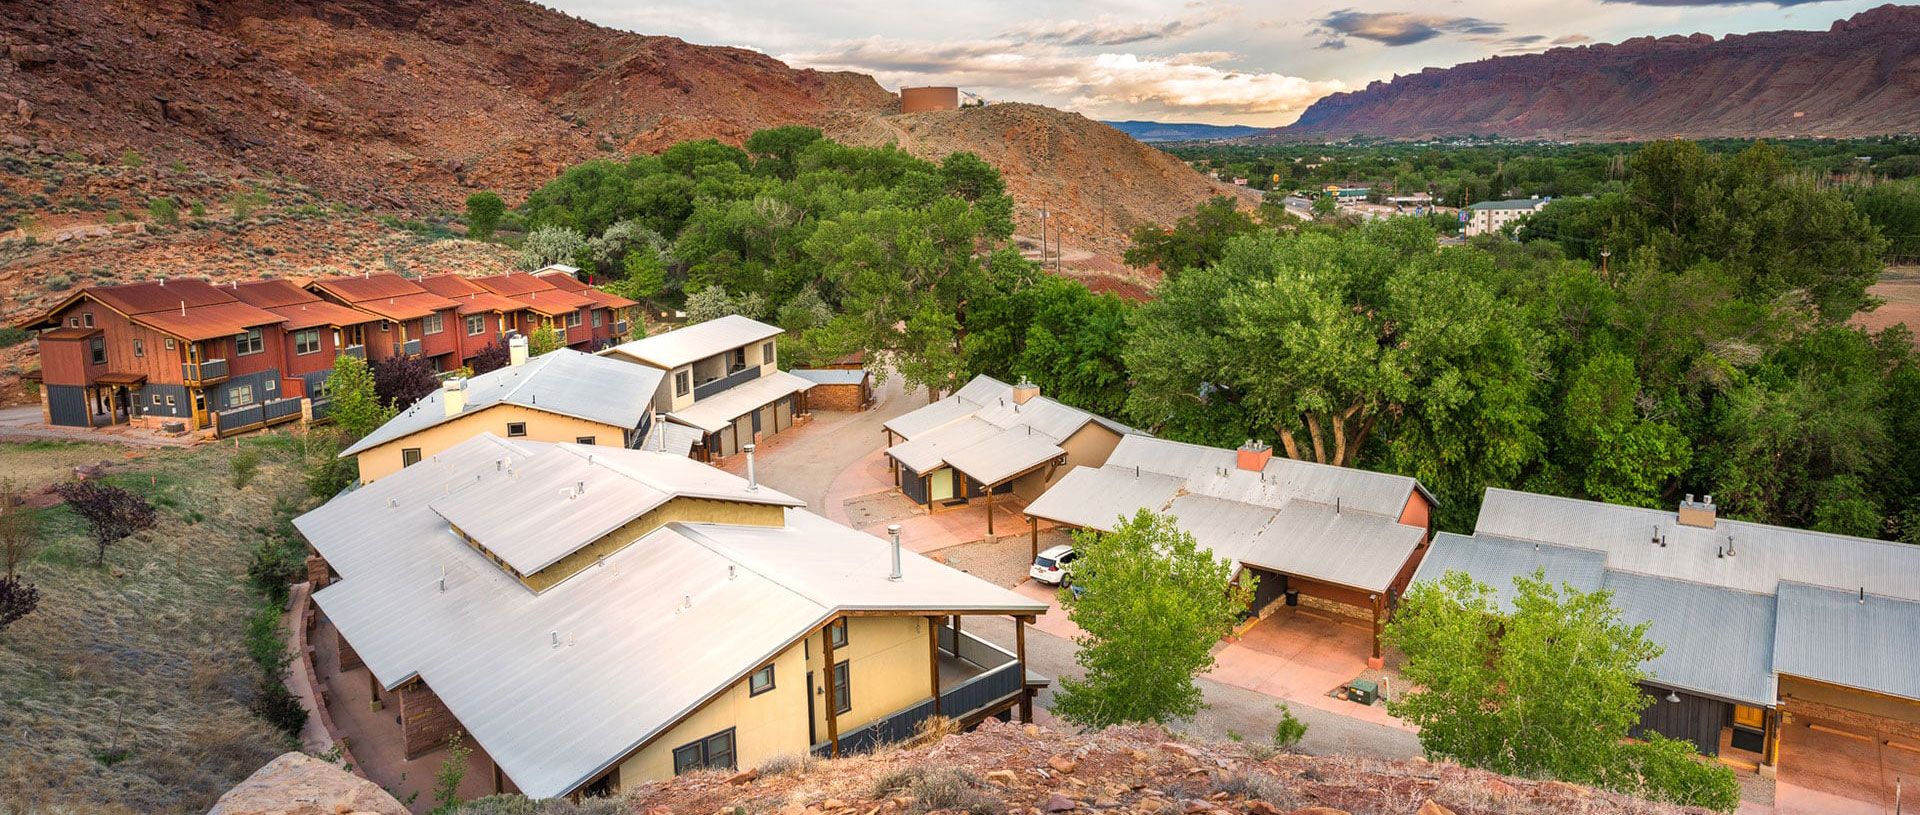 Aerial view of rows of the triangular roofs of townhouse units on Moab Springs Ranch with tall green trees and grasslands, and a rural road leading into the property.